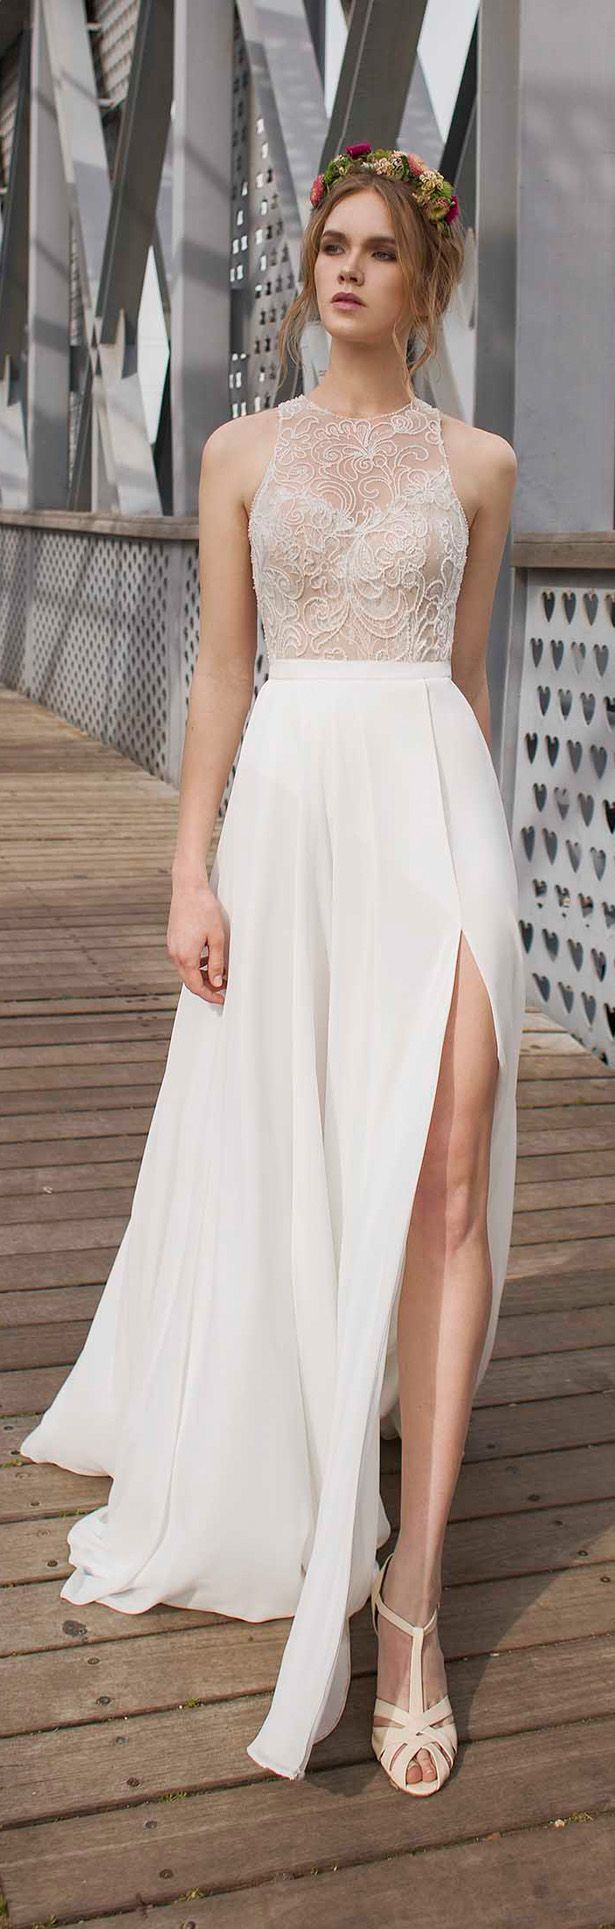 Limorrosen bridal urban dreams collection wedding dress bridal gowns ombrellifo Image collections